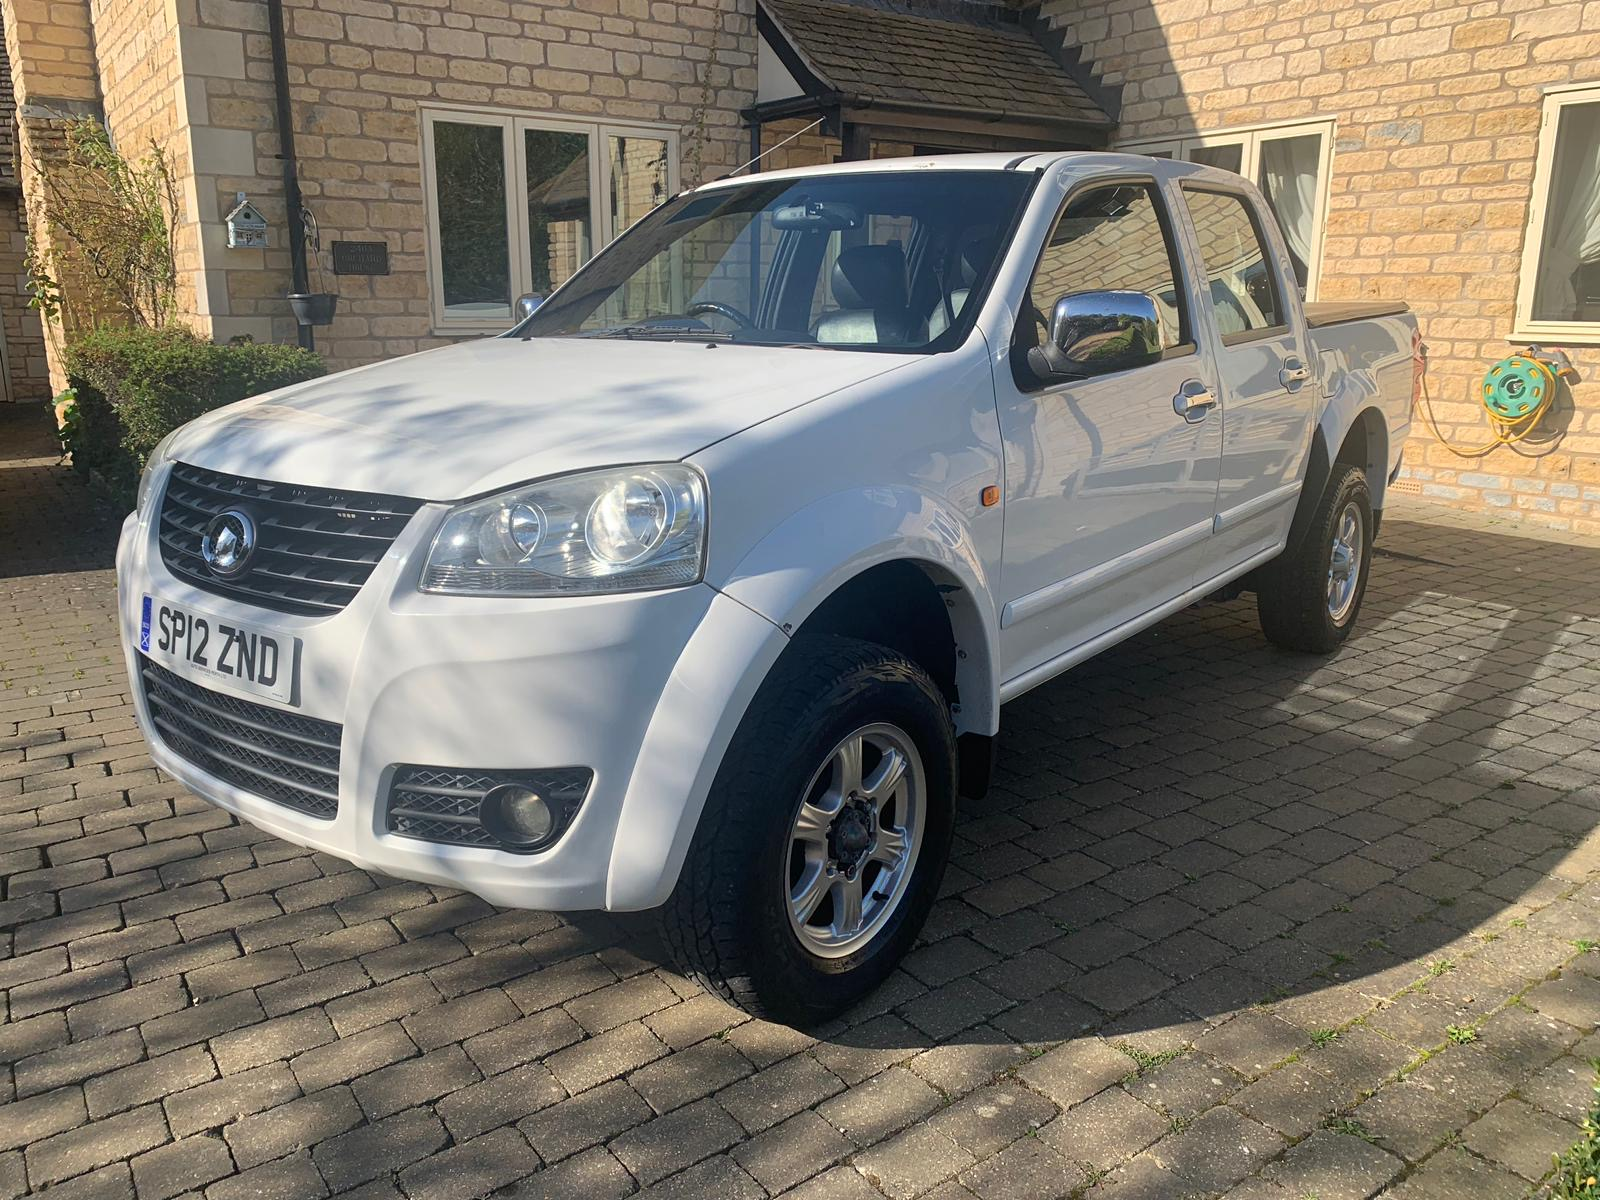 2012 Great Wall Steed Double Cab